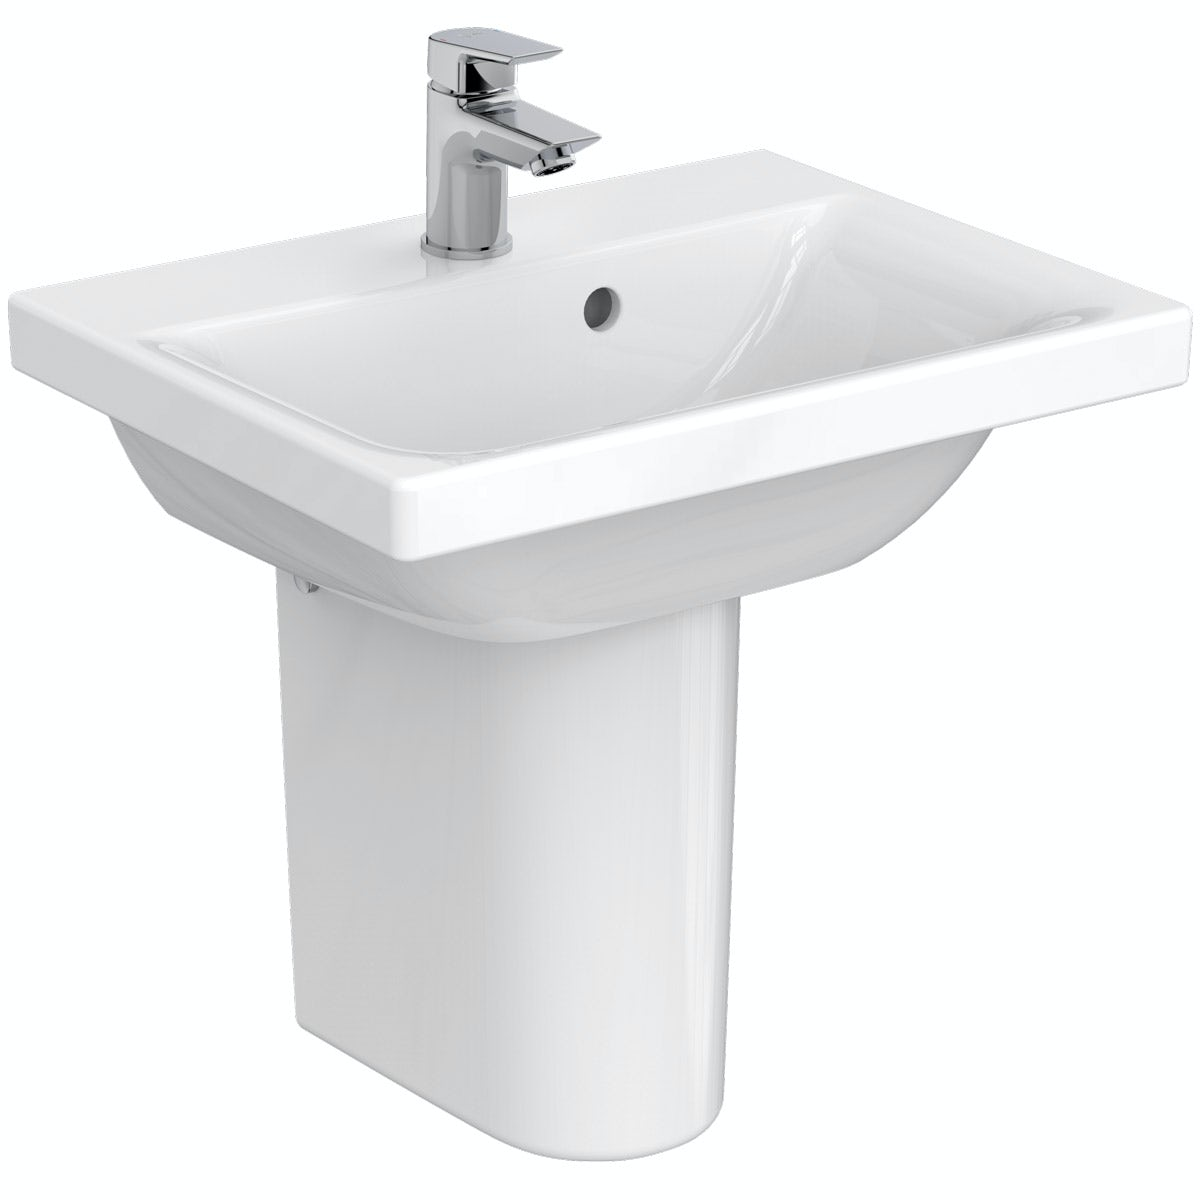 Ideal Standard Concept Space 1 tap hole semi pedestal basin 500mm